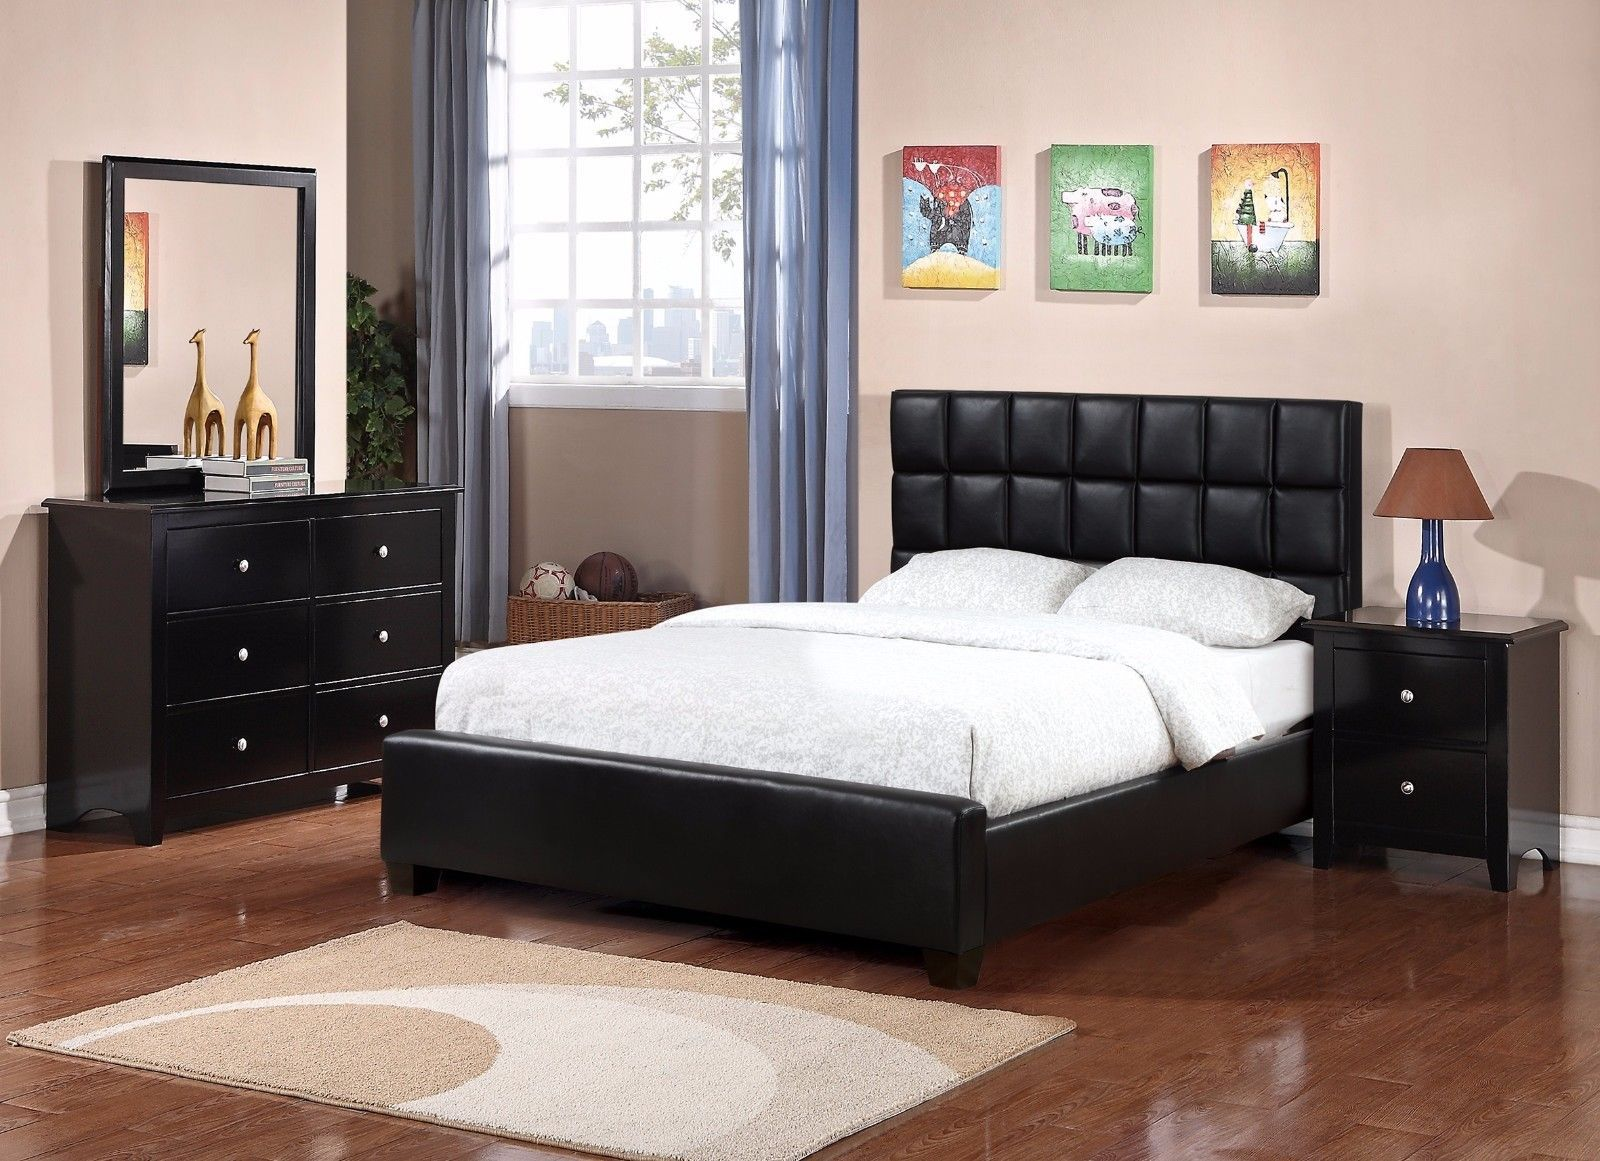 Full Size Bed Pattern Tufted Black Faux Leather Headboard 4Pc Prepossessing Black Queen Bedroom Sets Inspiration